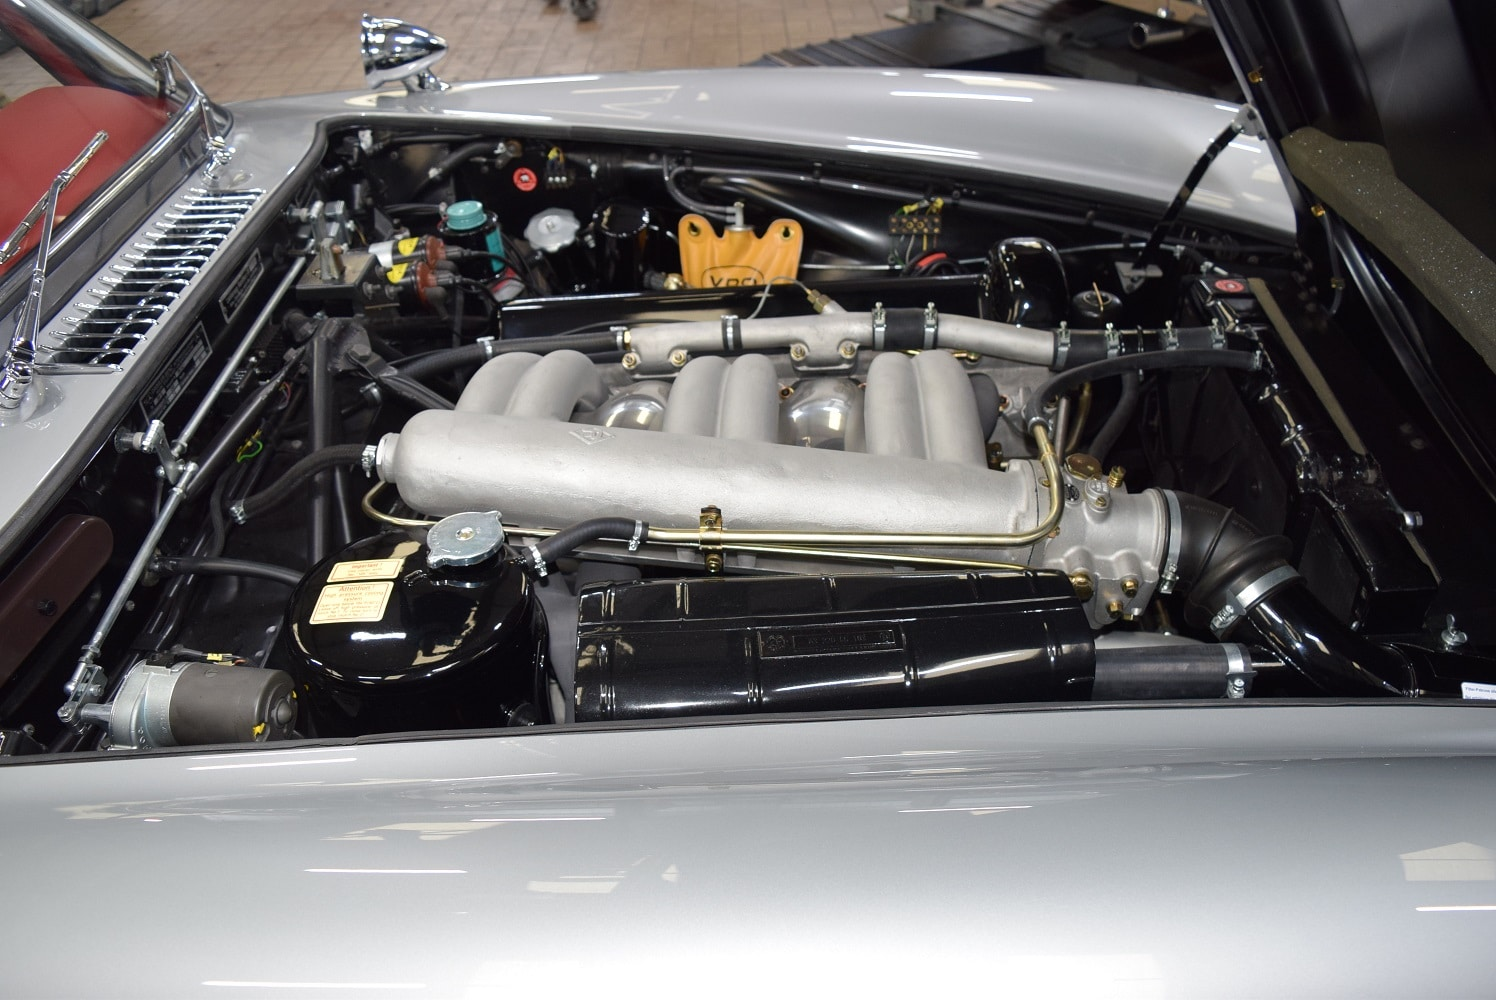 Mercedes 300SL side view of engine